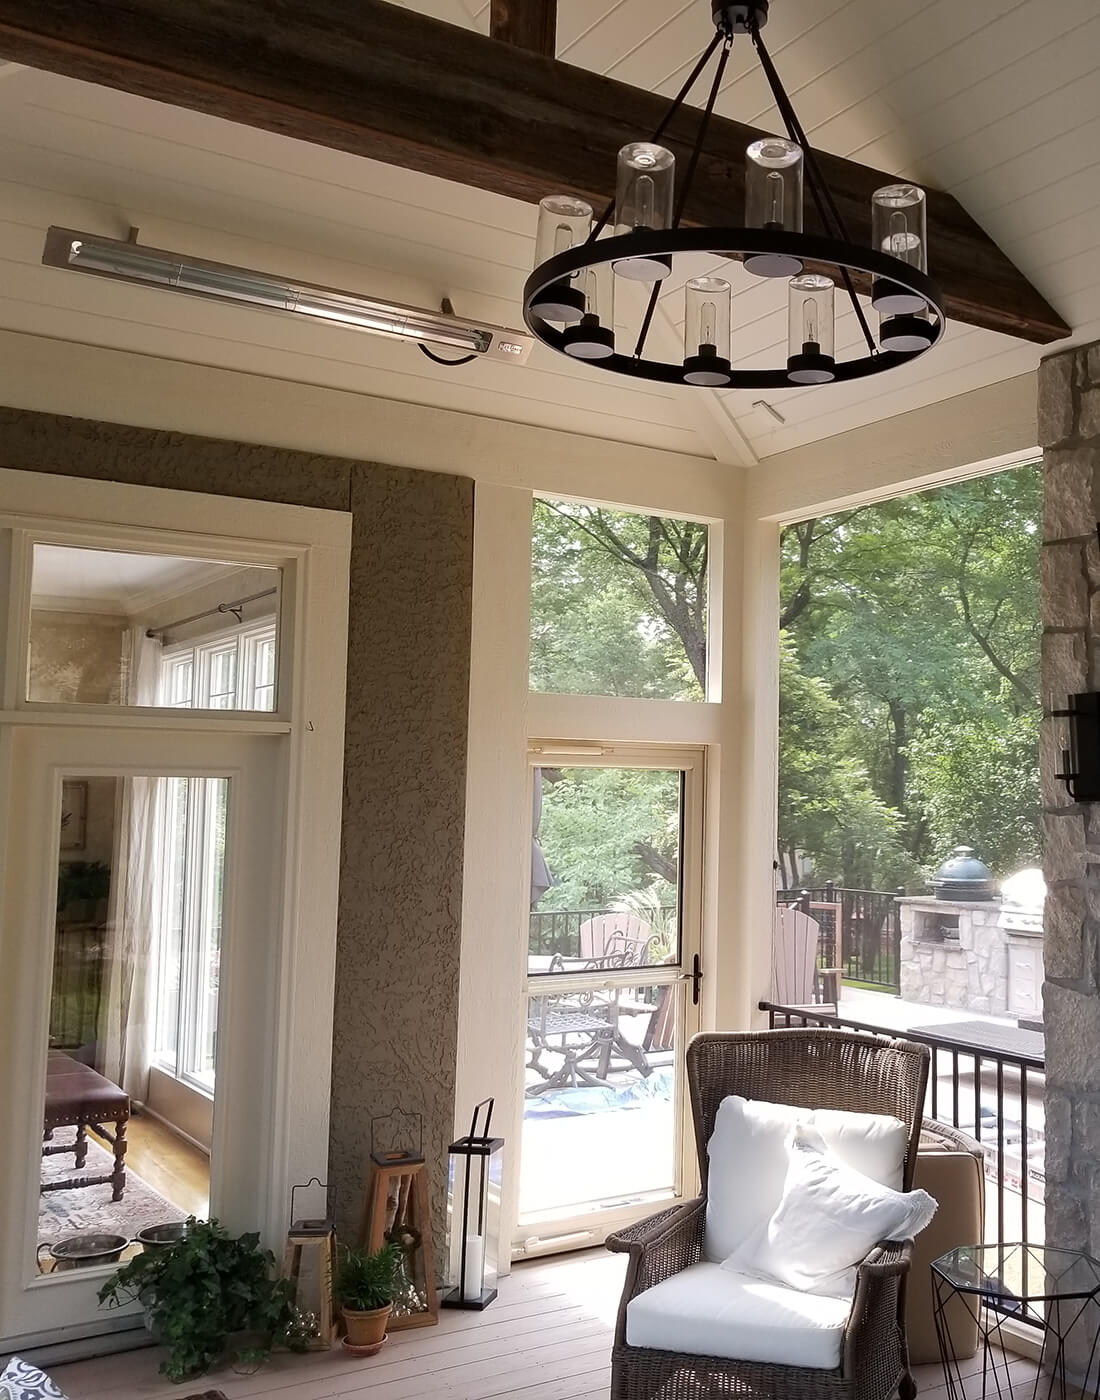 Screened porch lighting details